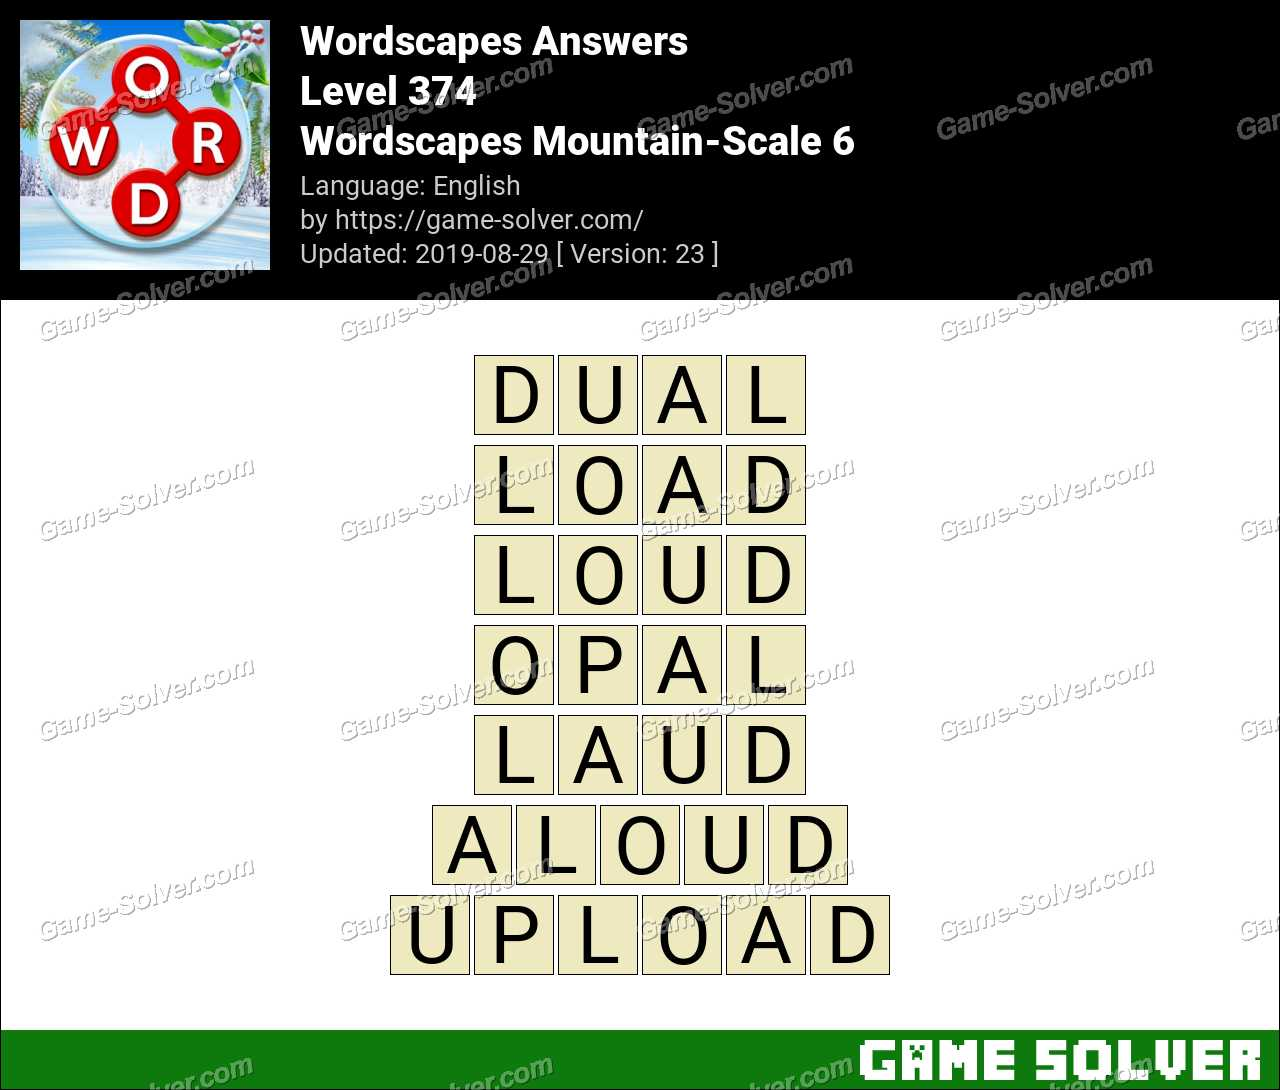 Wordscapes Mountain-Scale 6 Answers